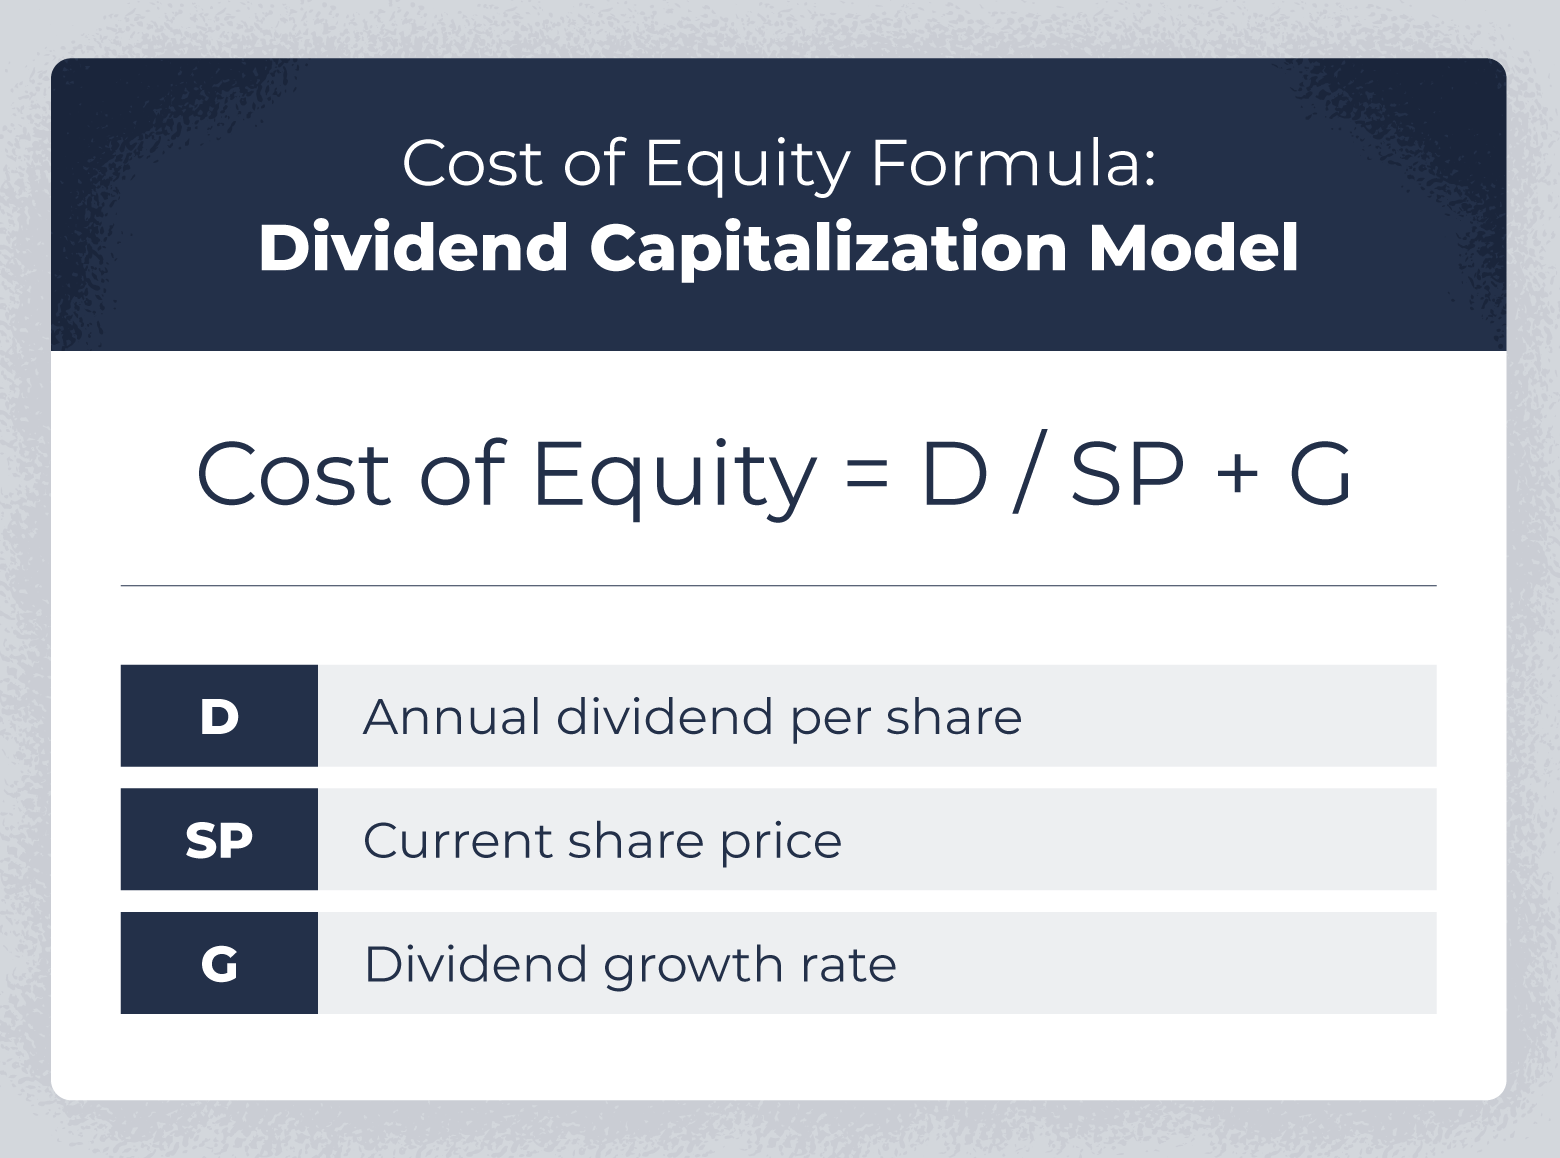 cost of equity formula using the dividend capitalization model aka dividend discount model.